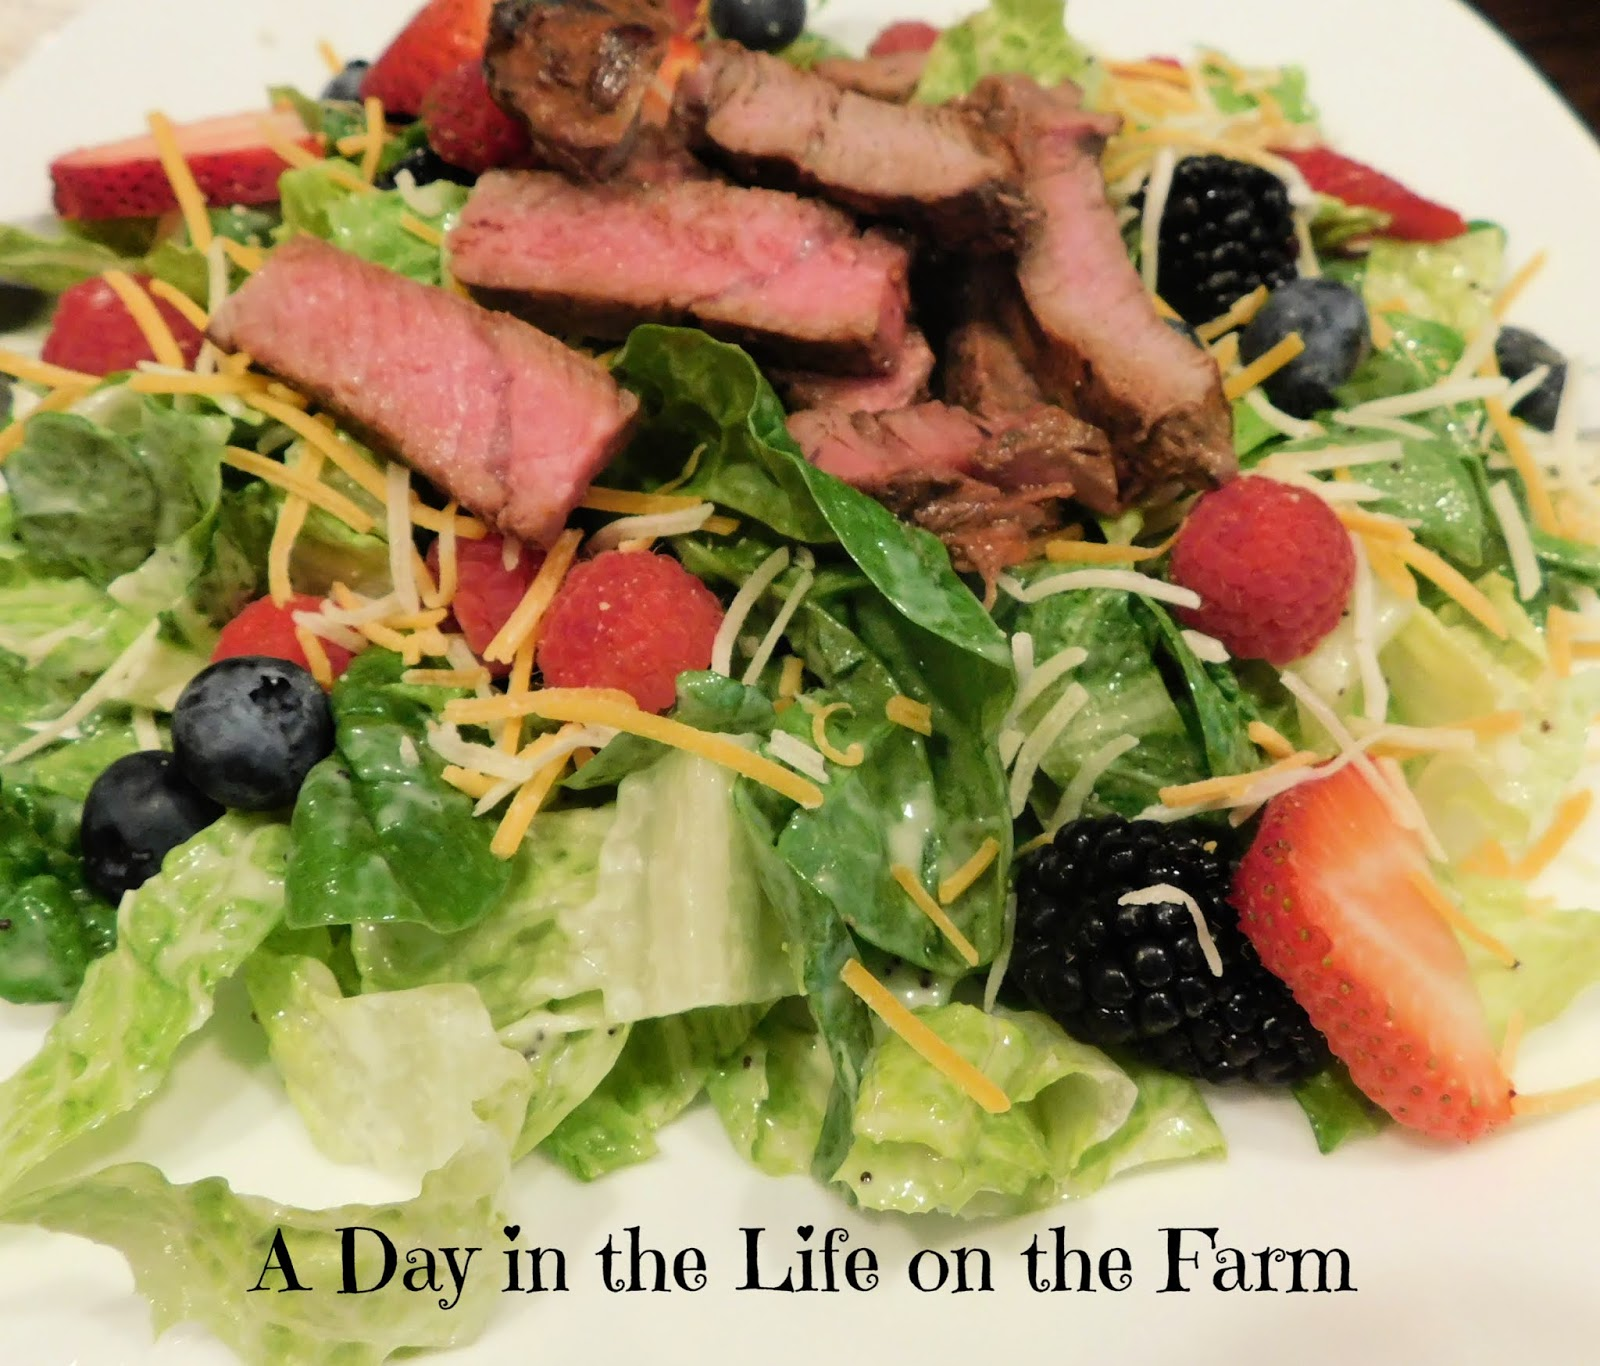 Spinach and Berry Salad with Grilled Steak